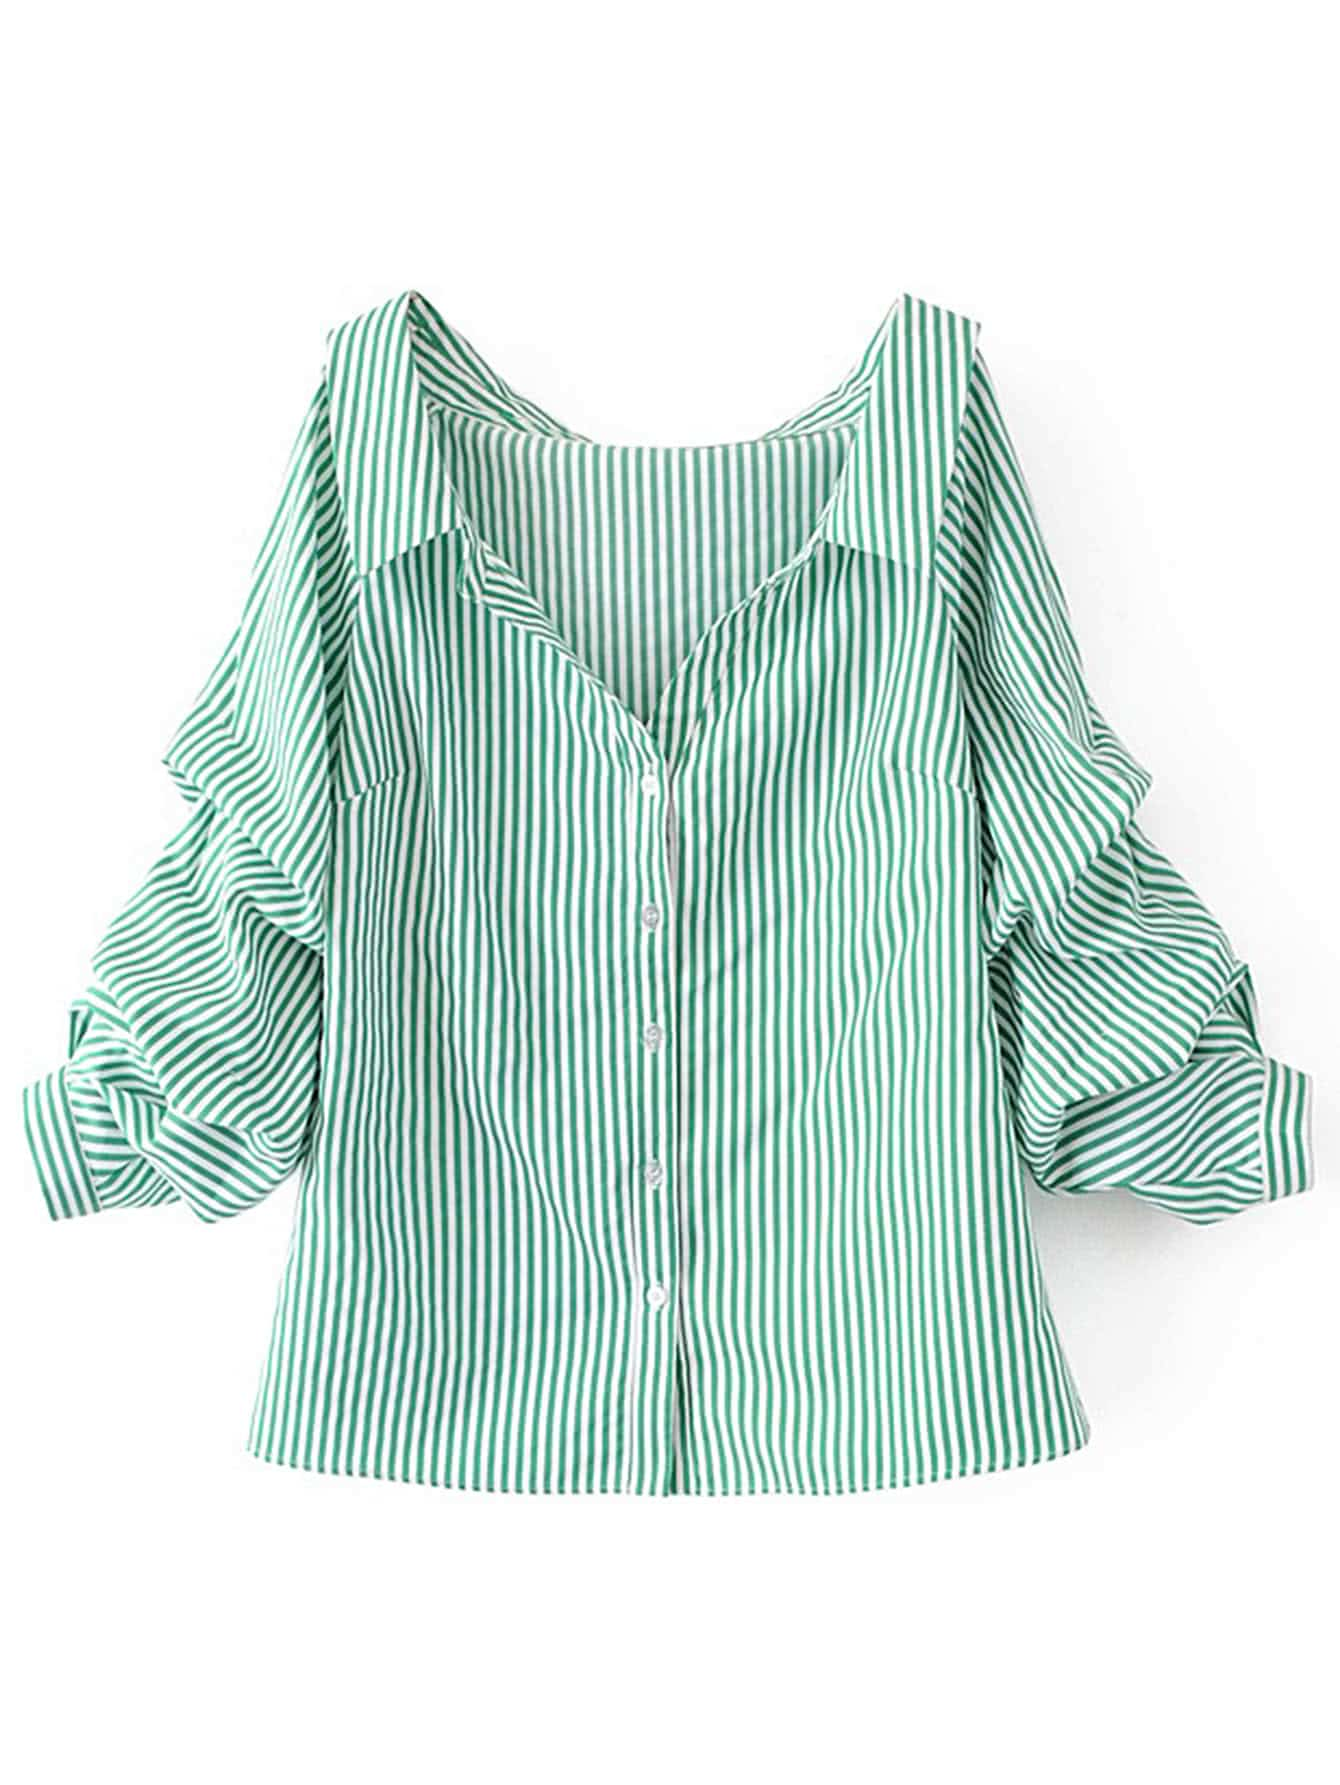 Vertical Striped Tunic Blouse 4304